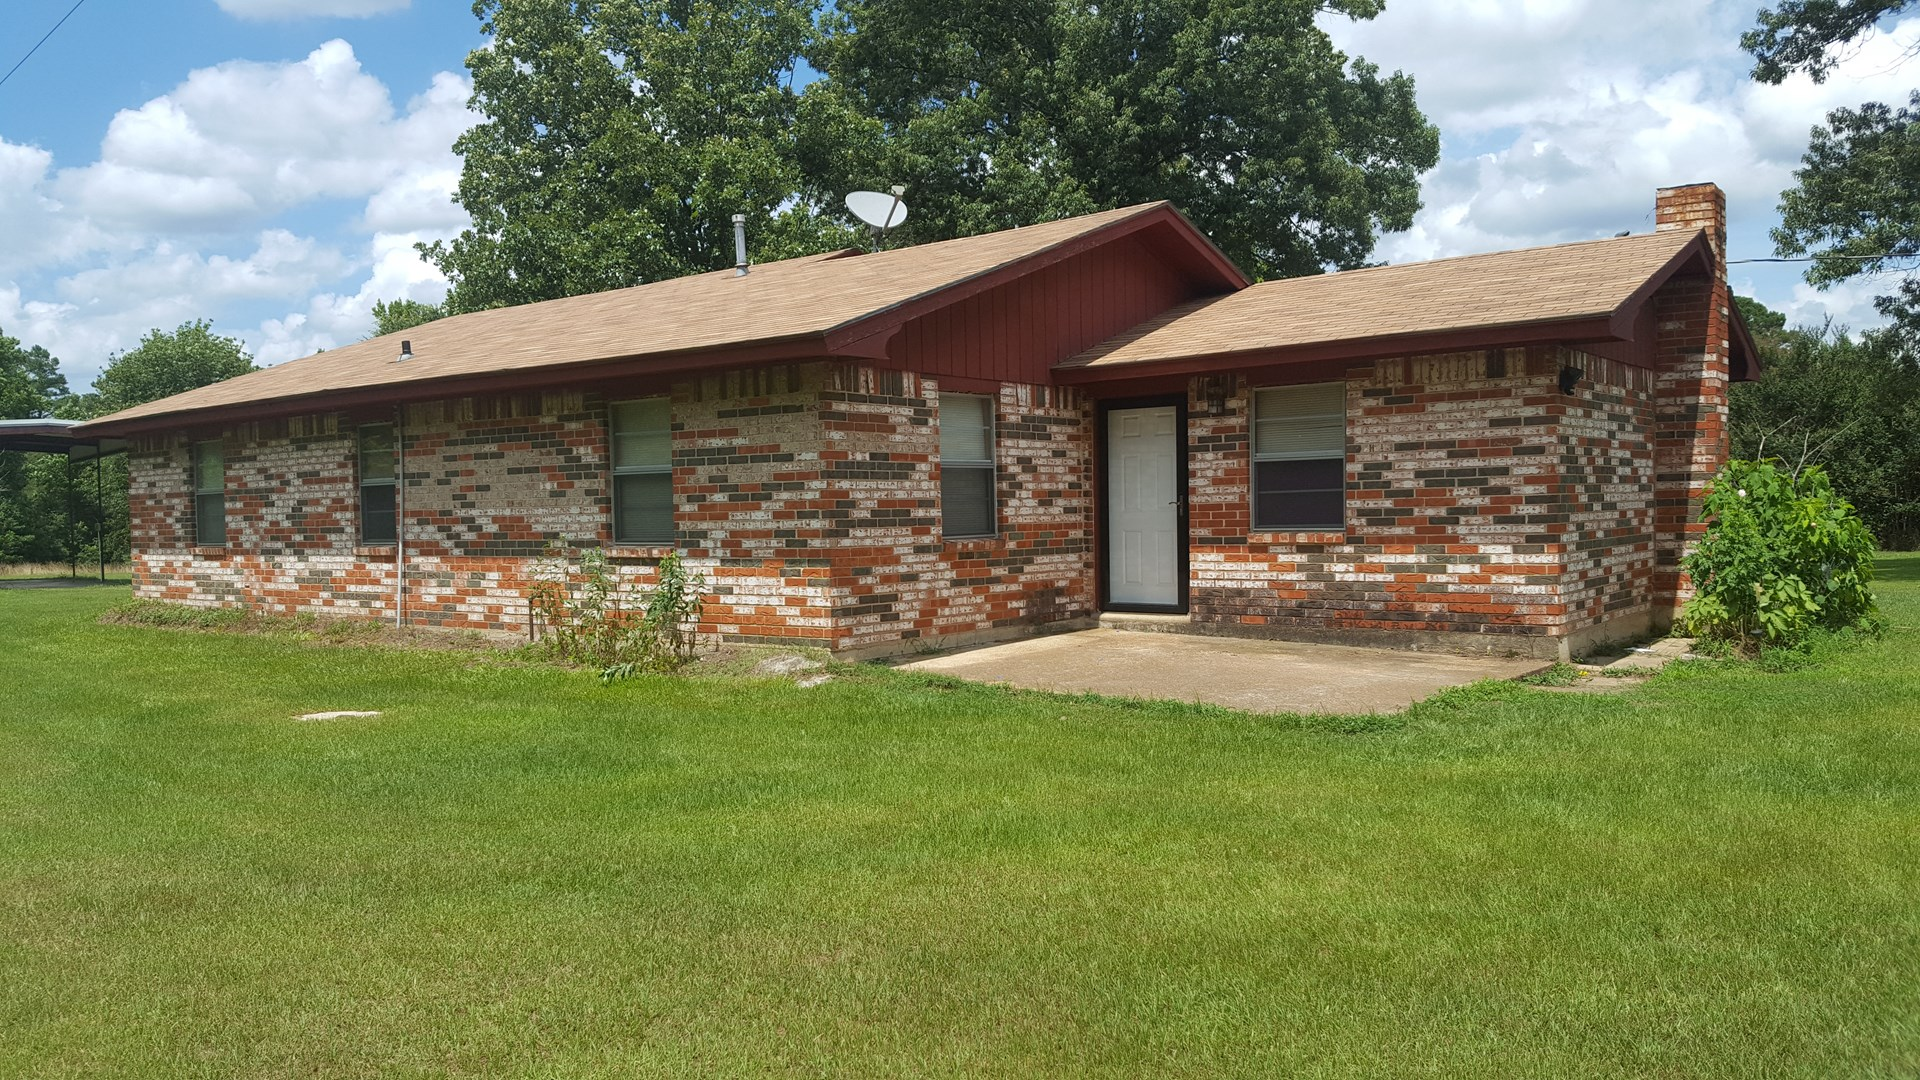 Southeastern Oklahoma House for Sale | Recreational Property